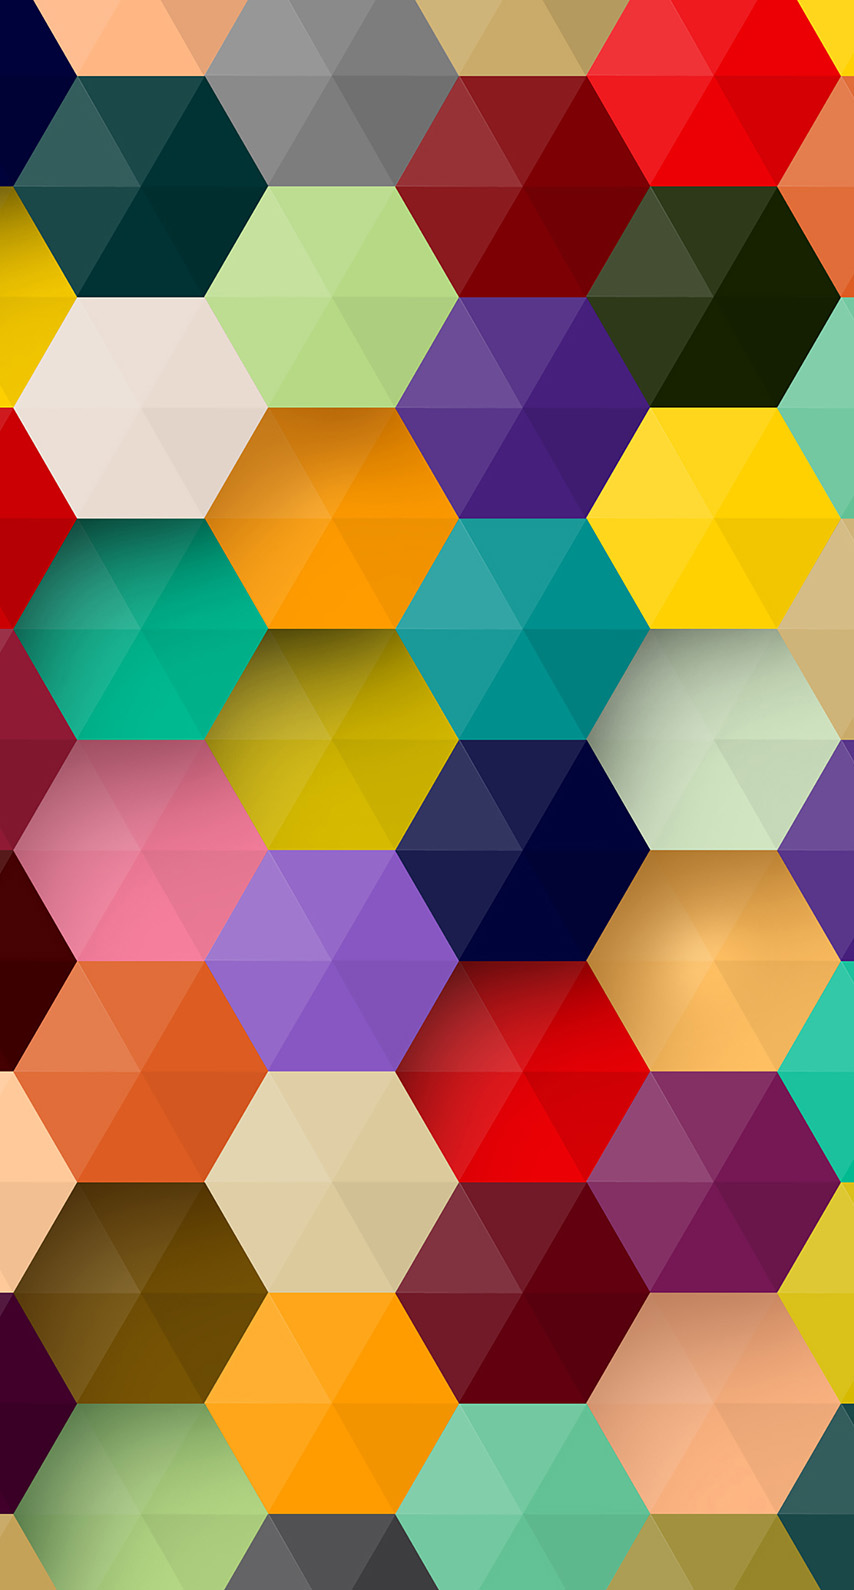 background, wallpaper, illustration, shape, motley, square, seamless, mosaic, triangle, hexagon